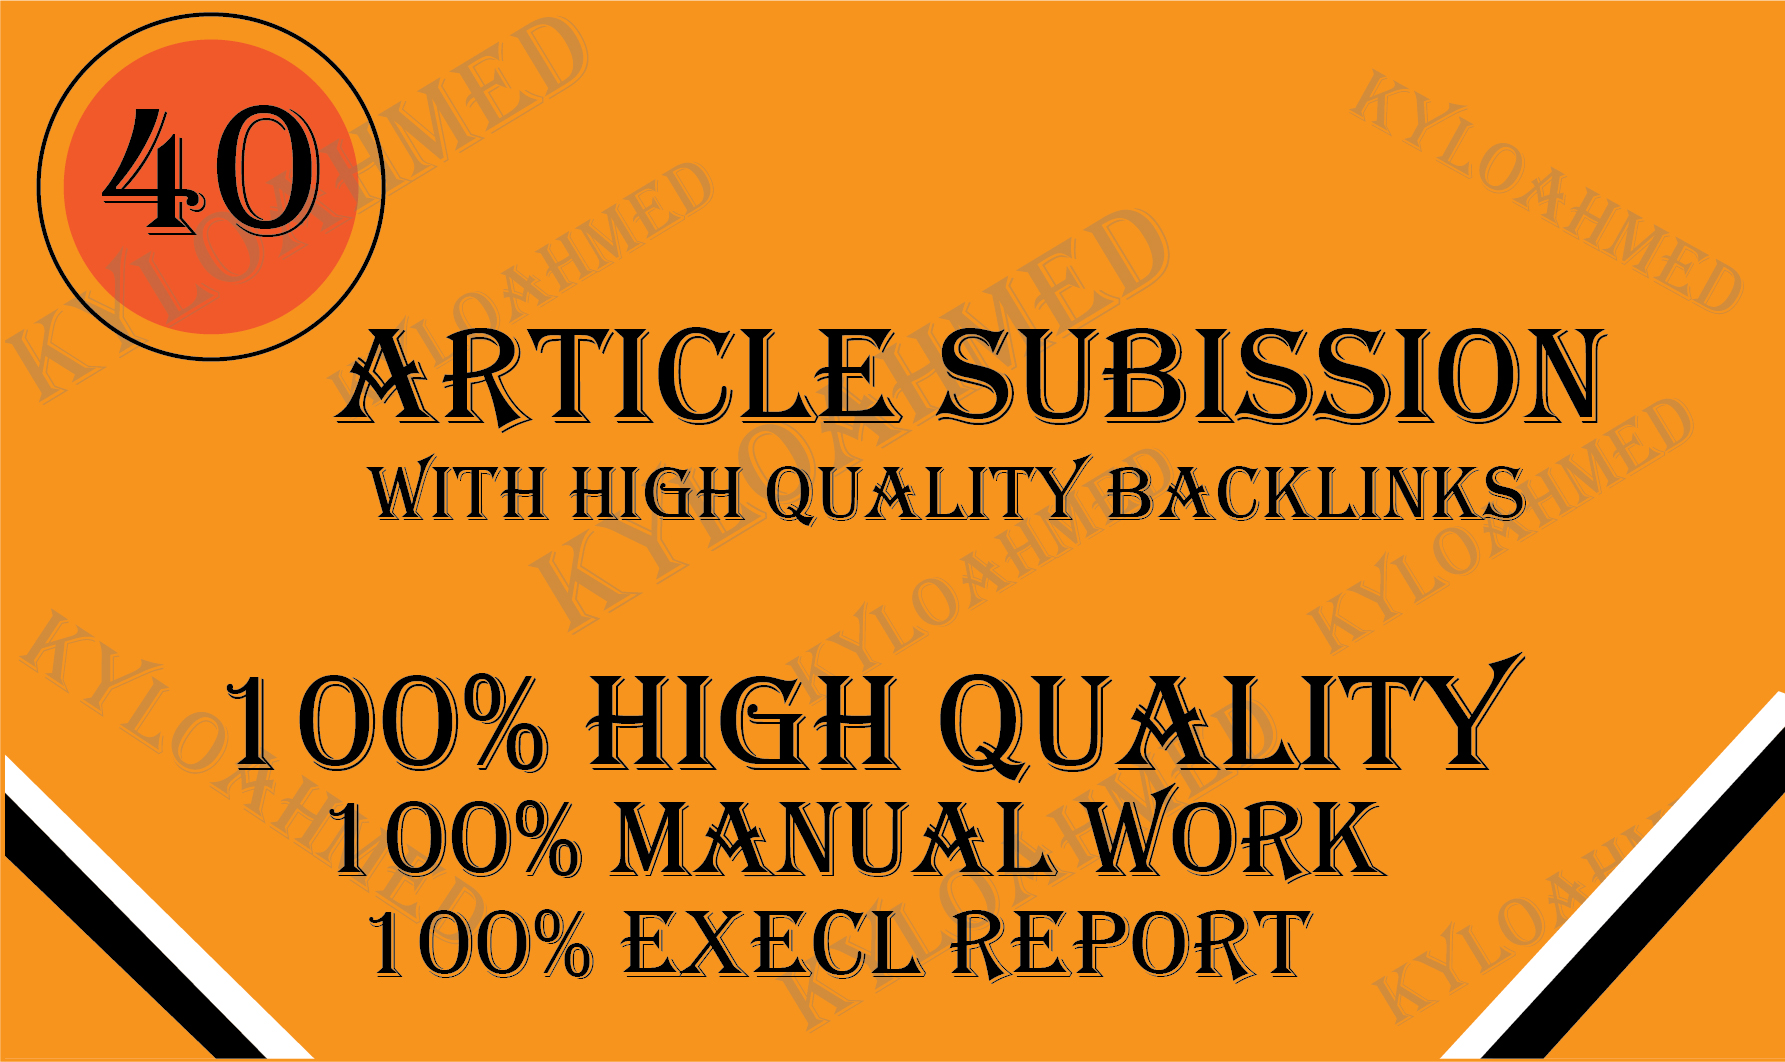 I will provide 40 article submission with high quality backlinks